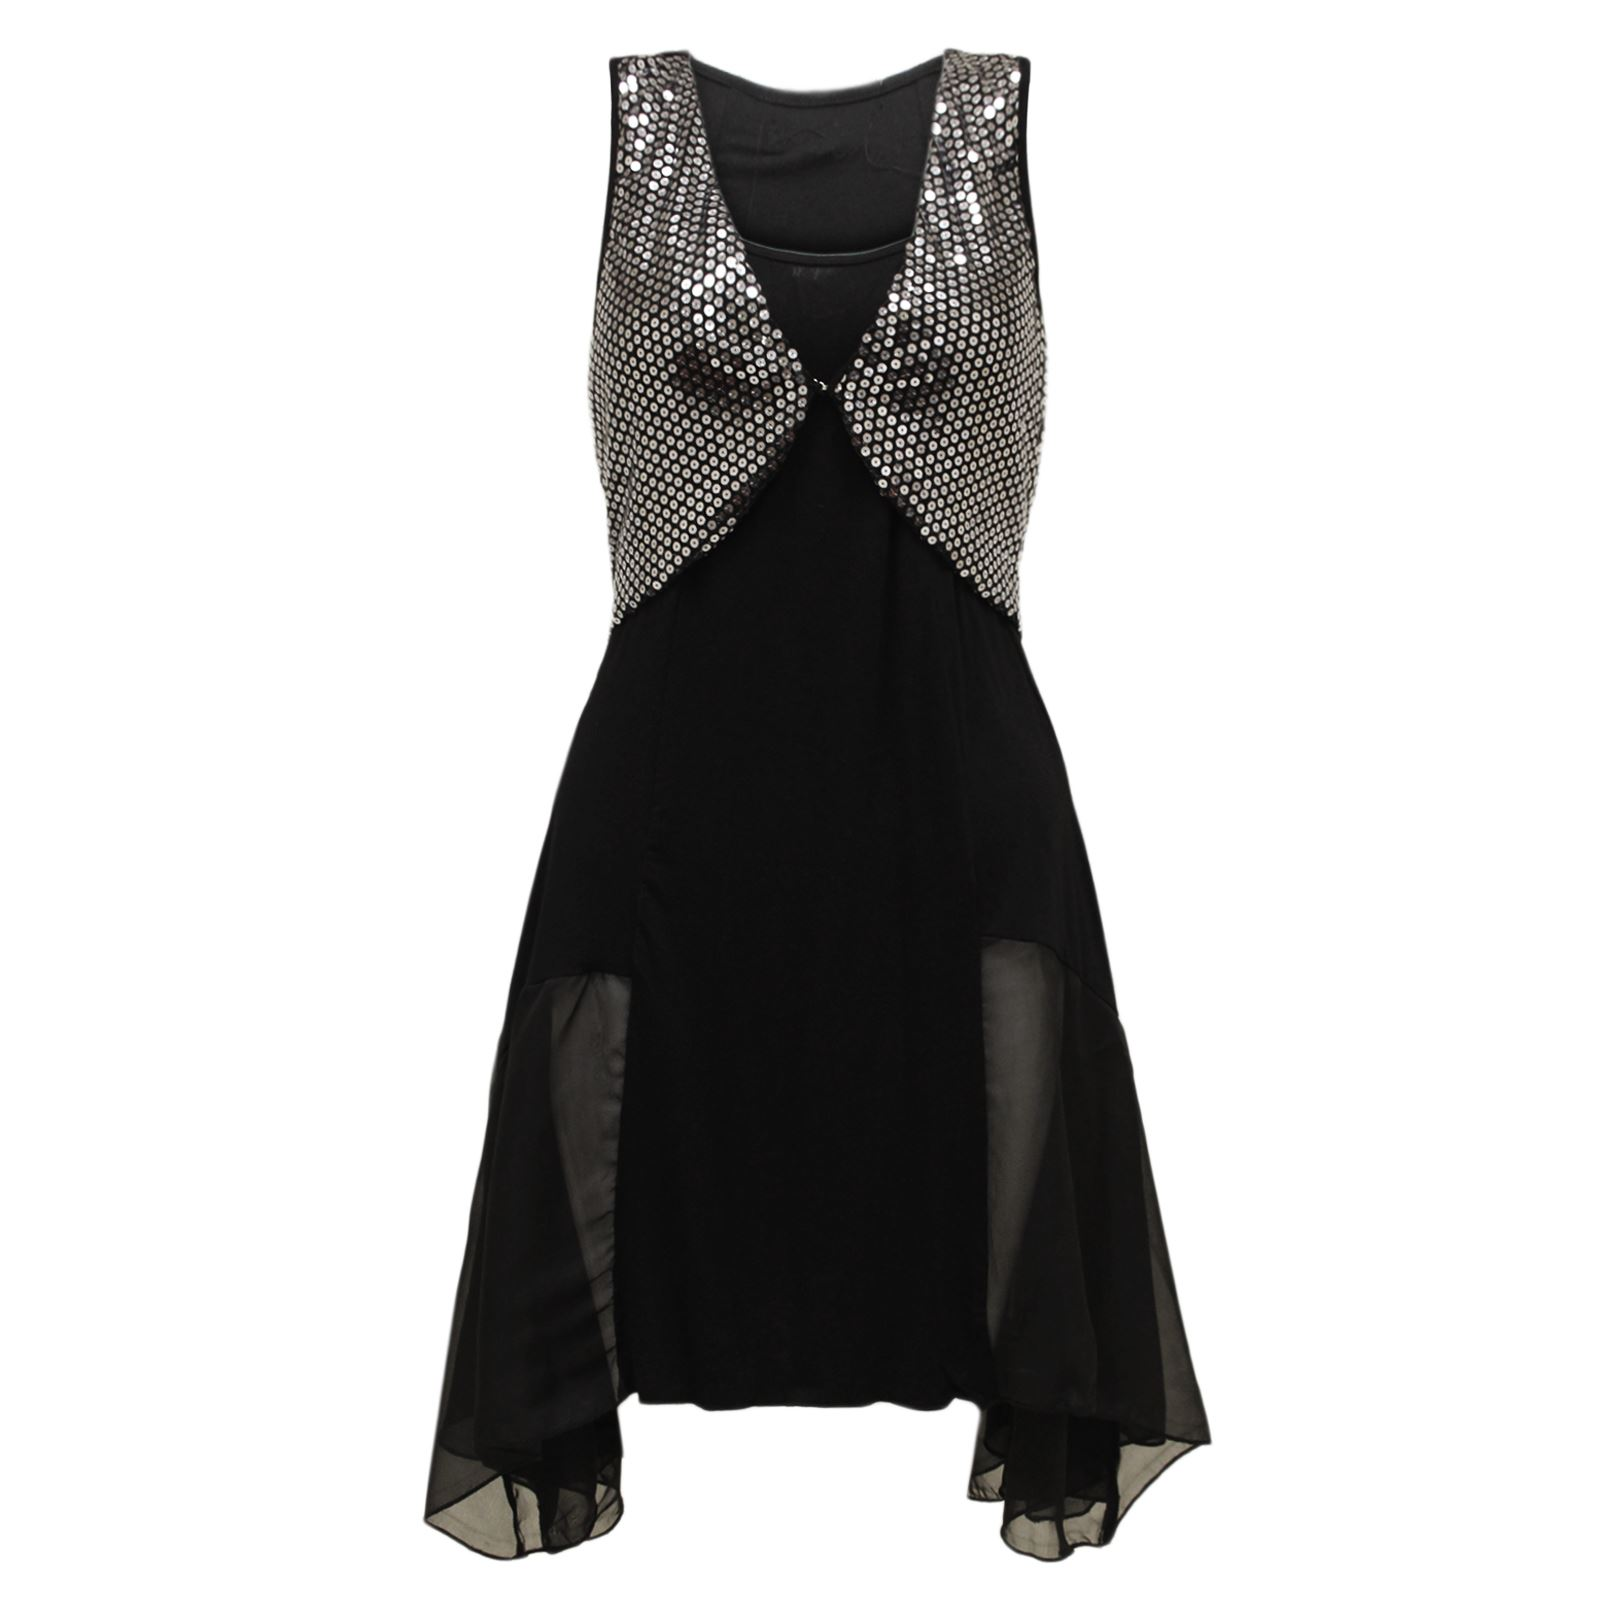 Sparkly Party Dresses Uk 98